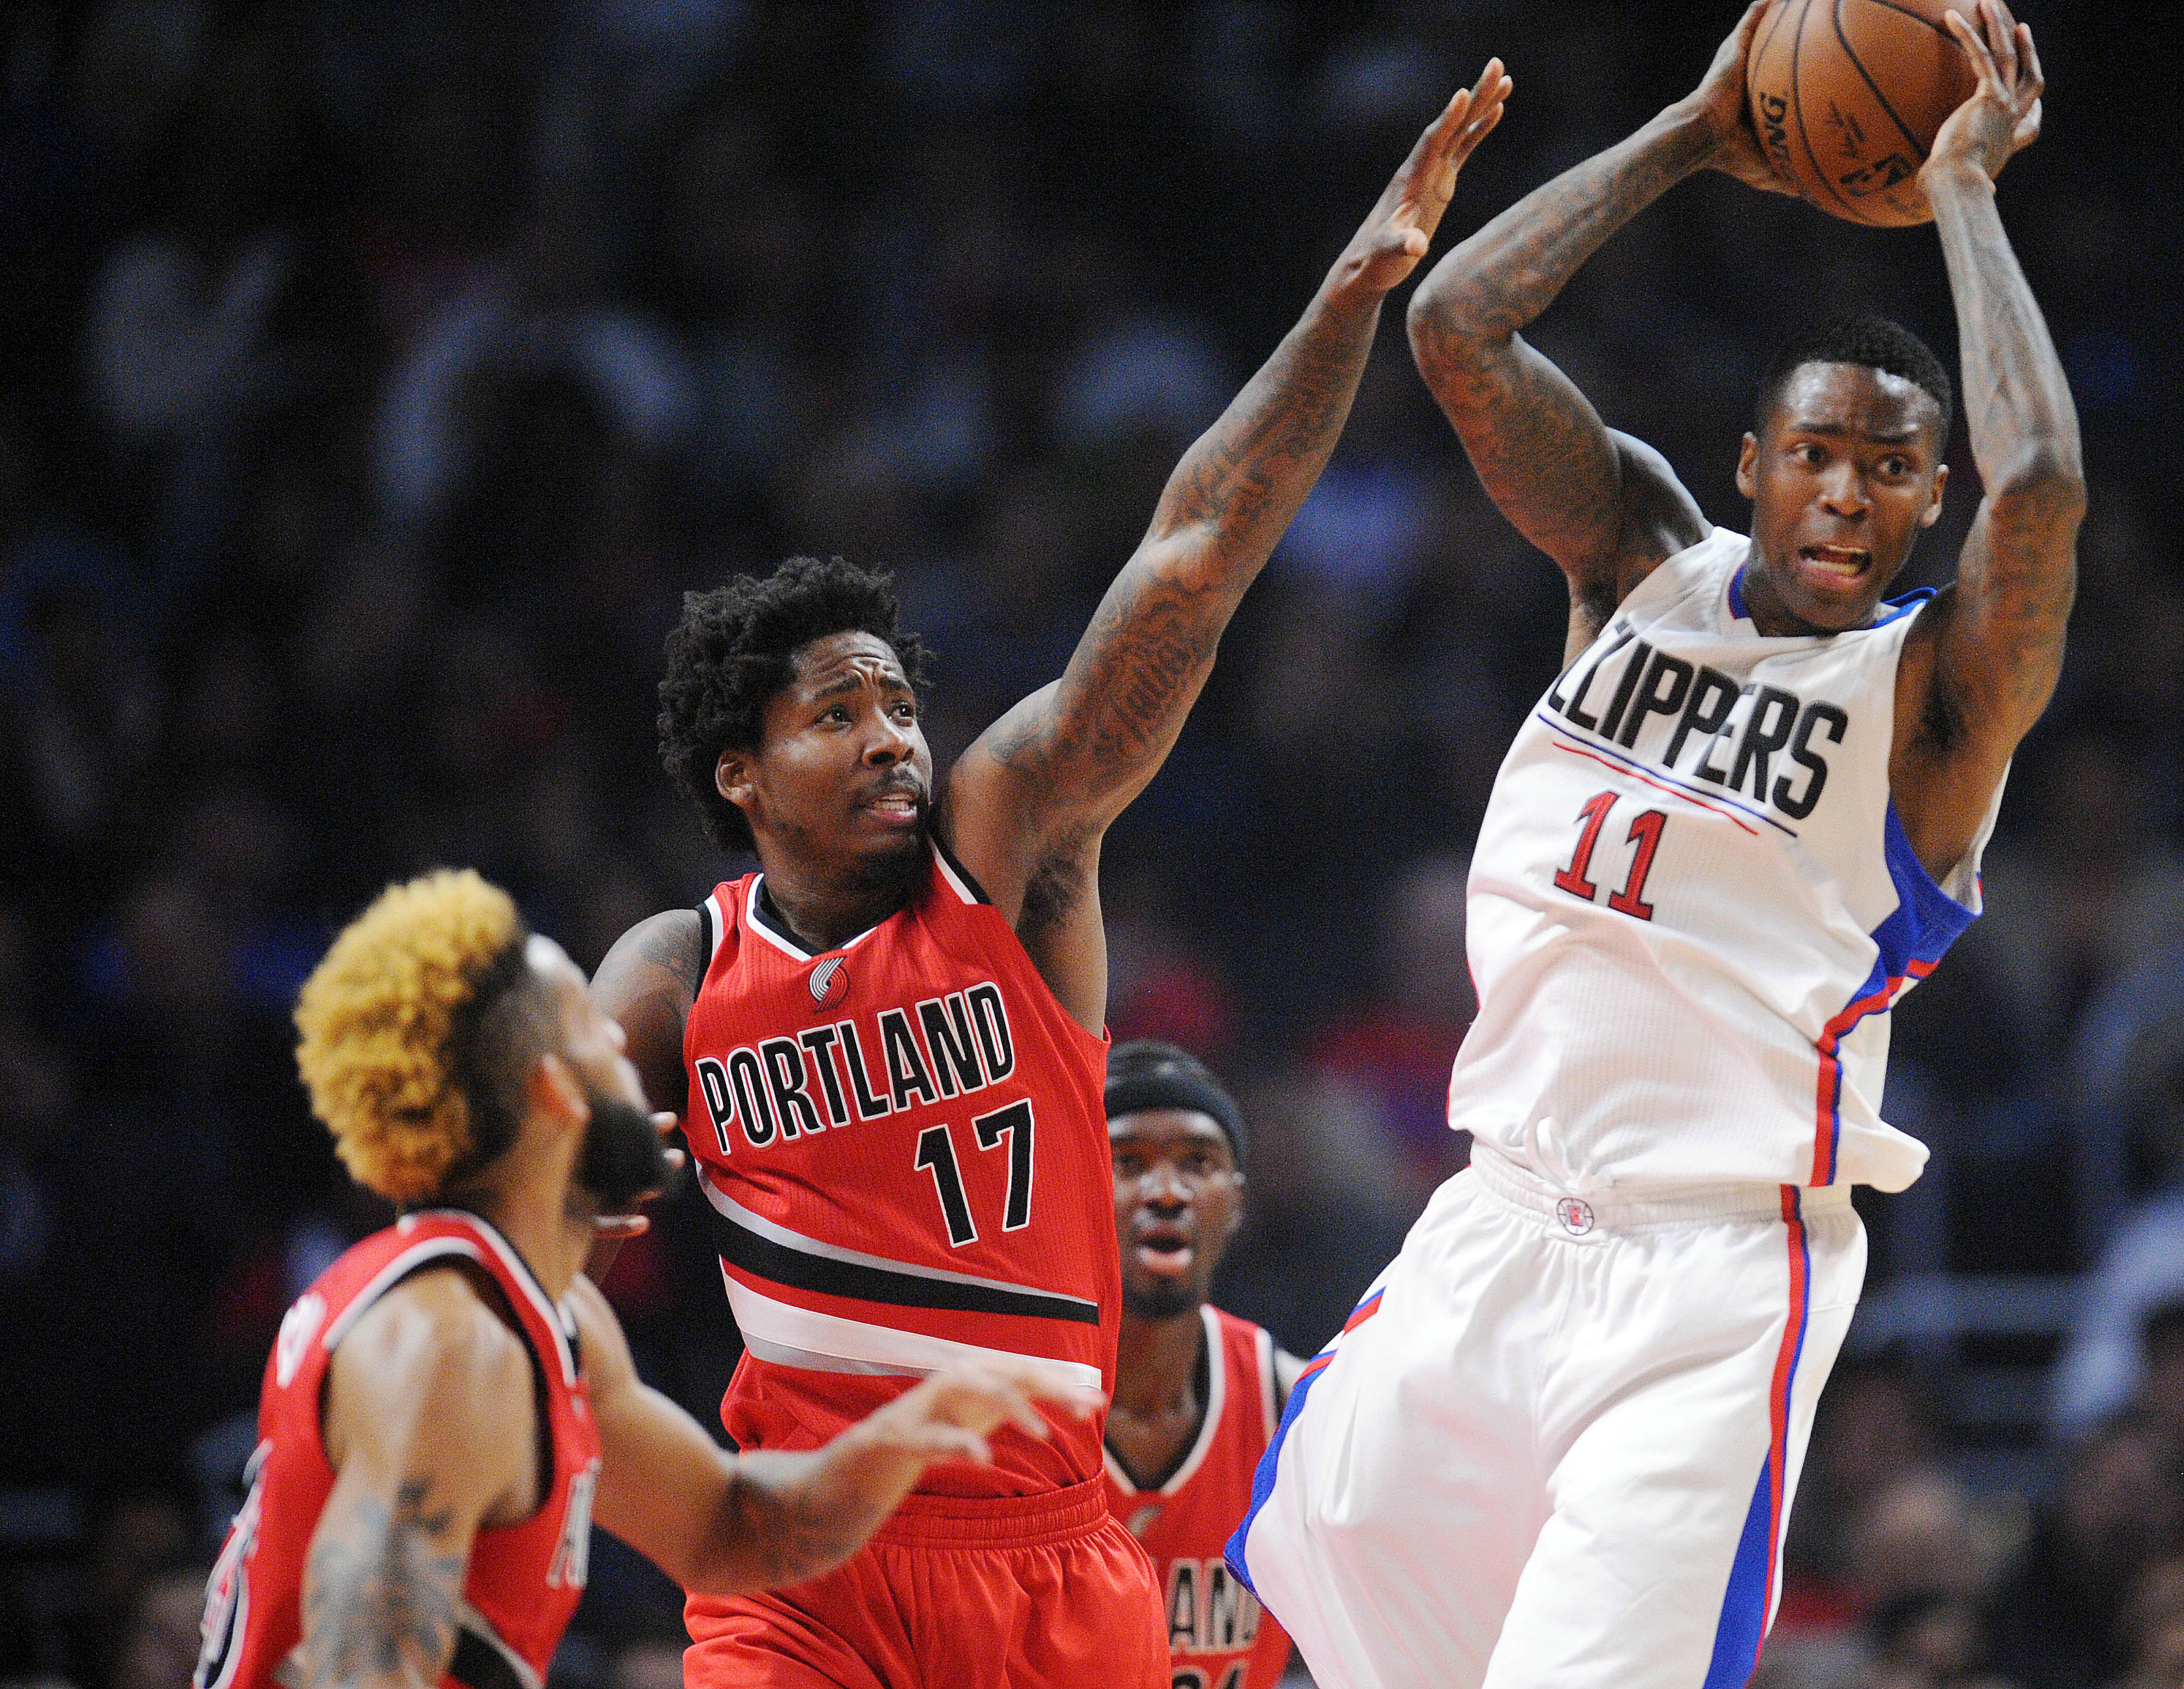 9744976-nba-portland-trail-blazers-at-los-angeles-clippers